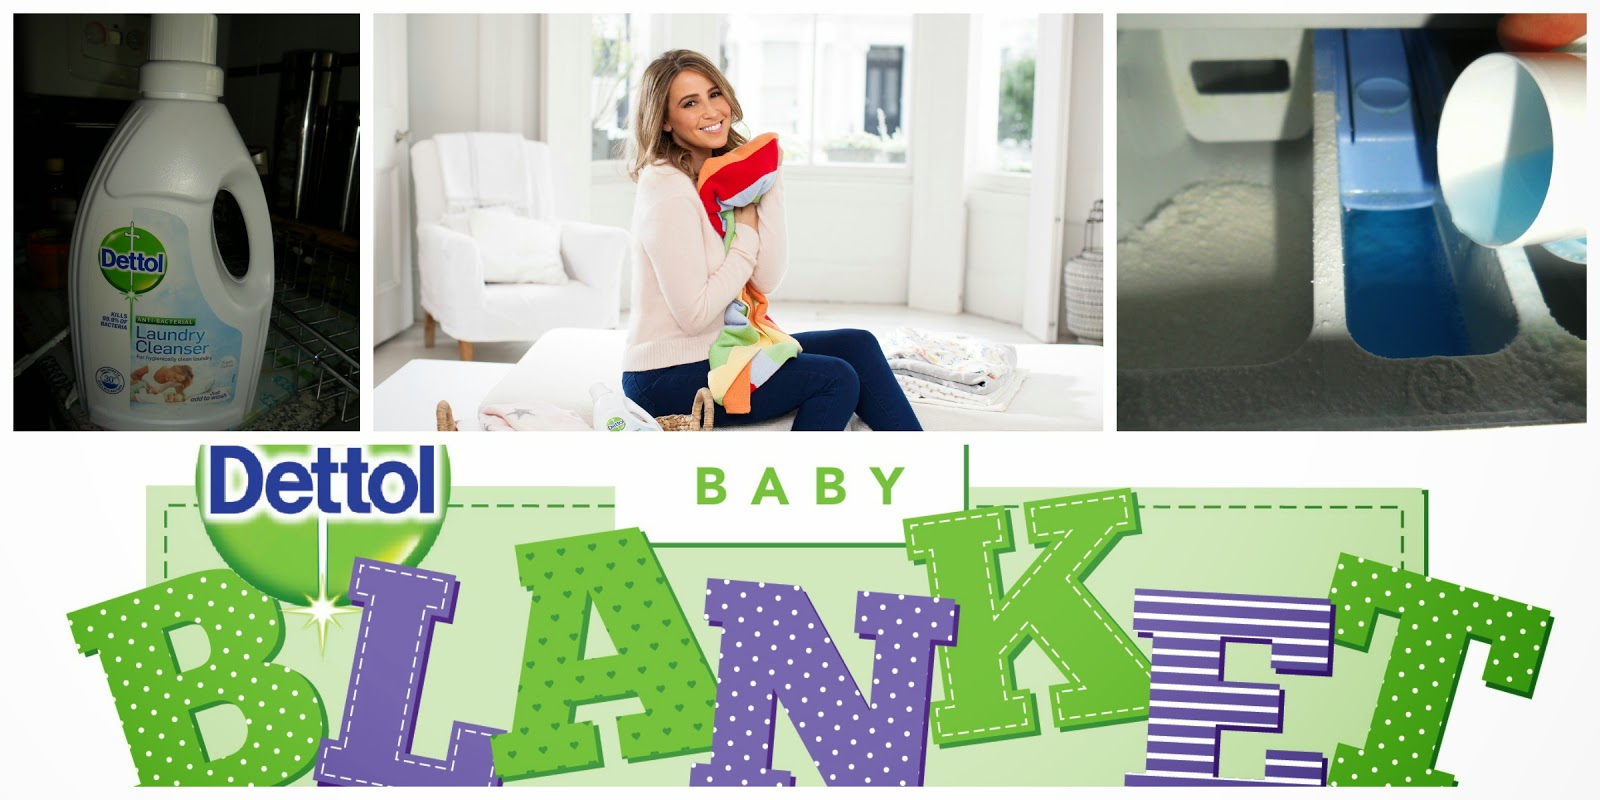 Dettol baby blanket donation 2014 campaign